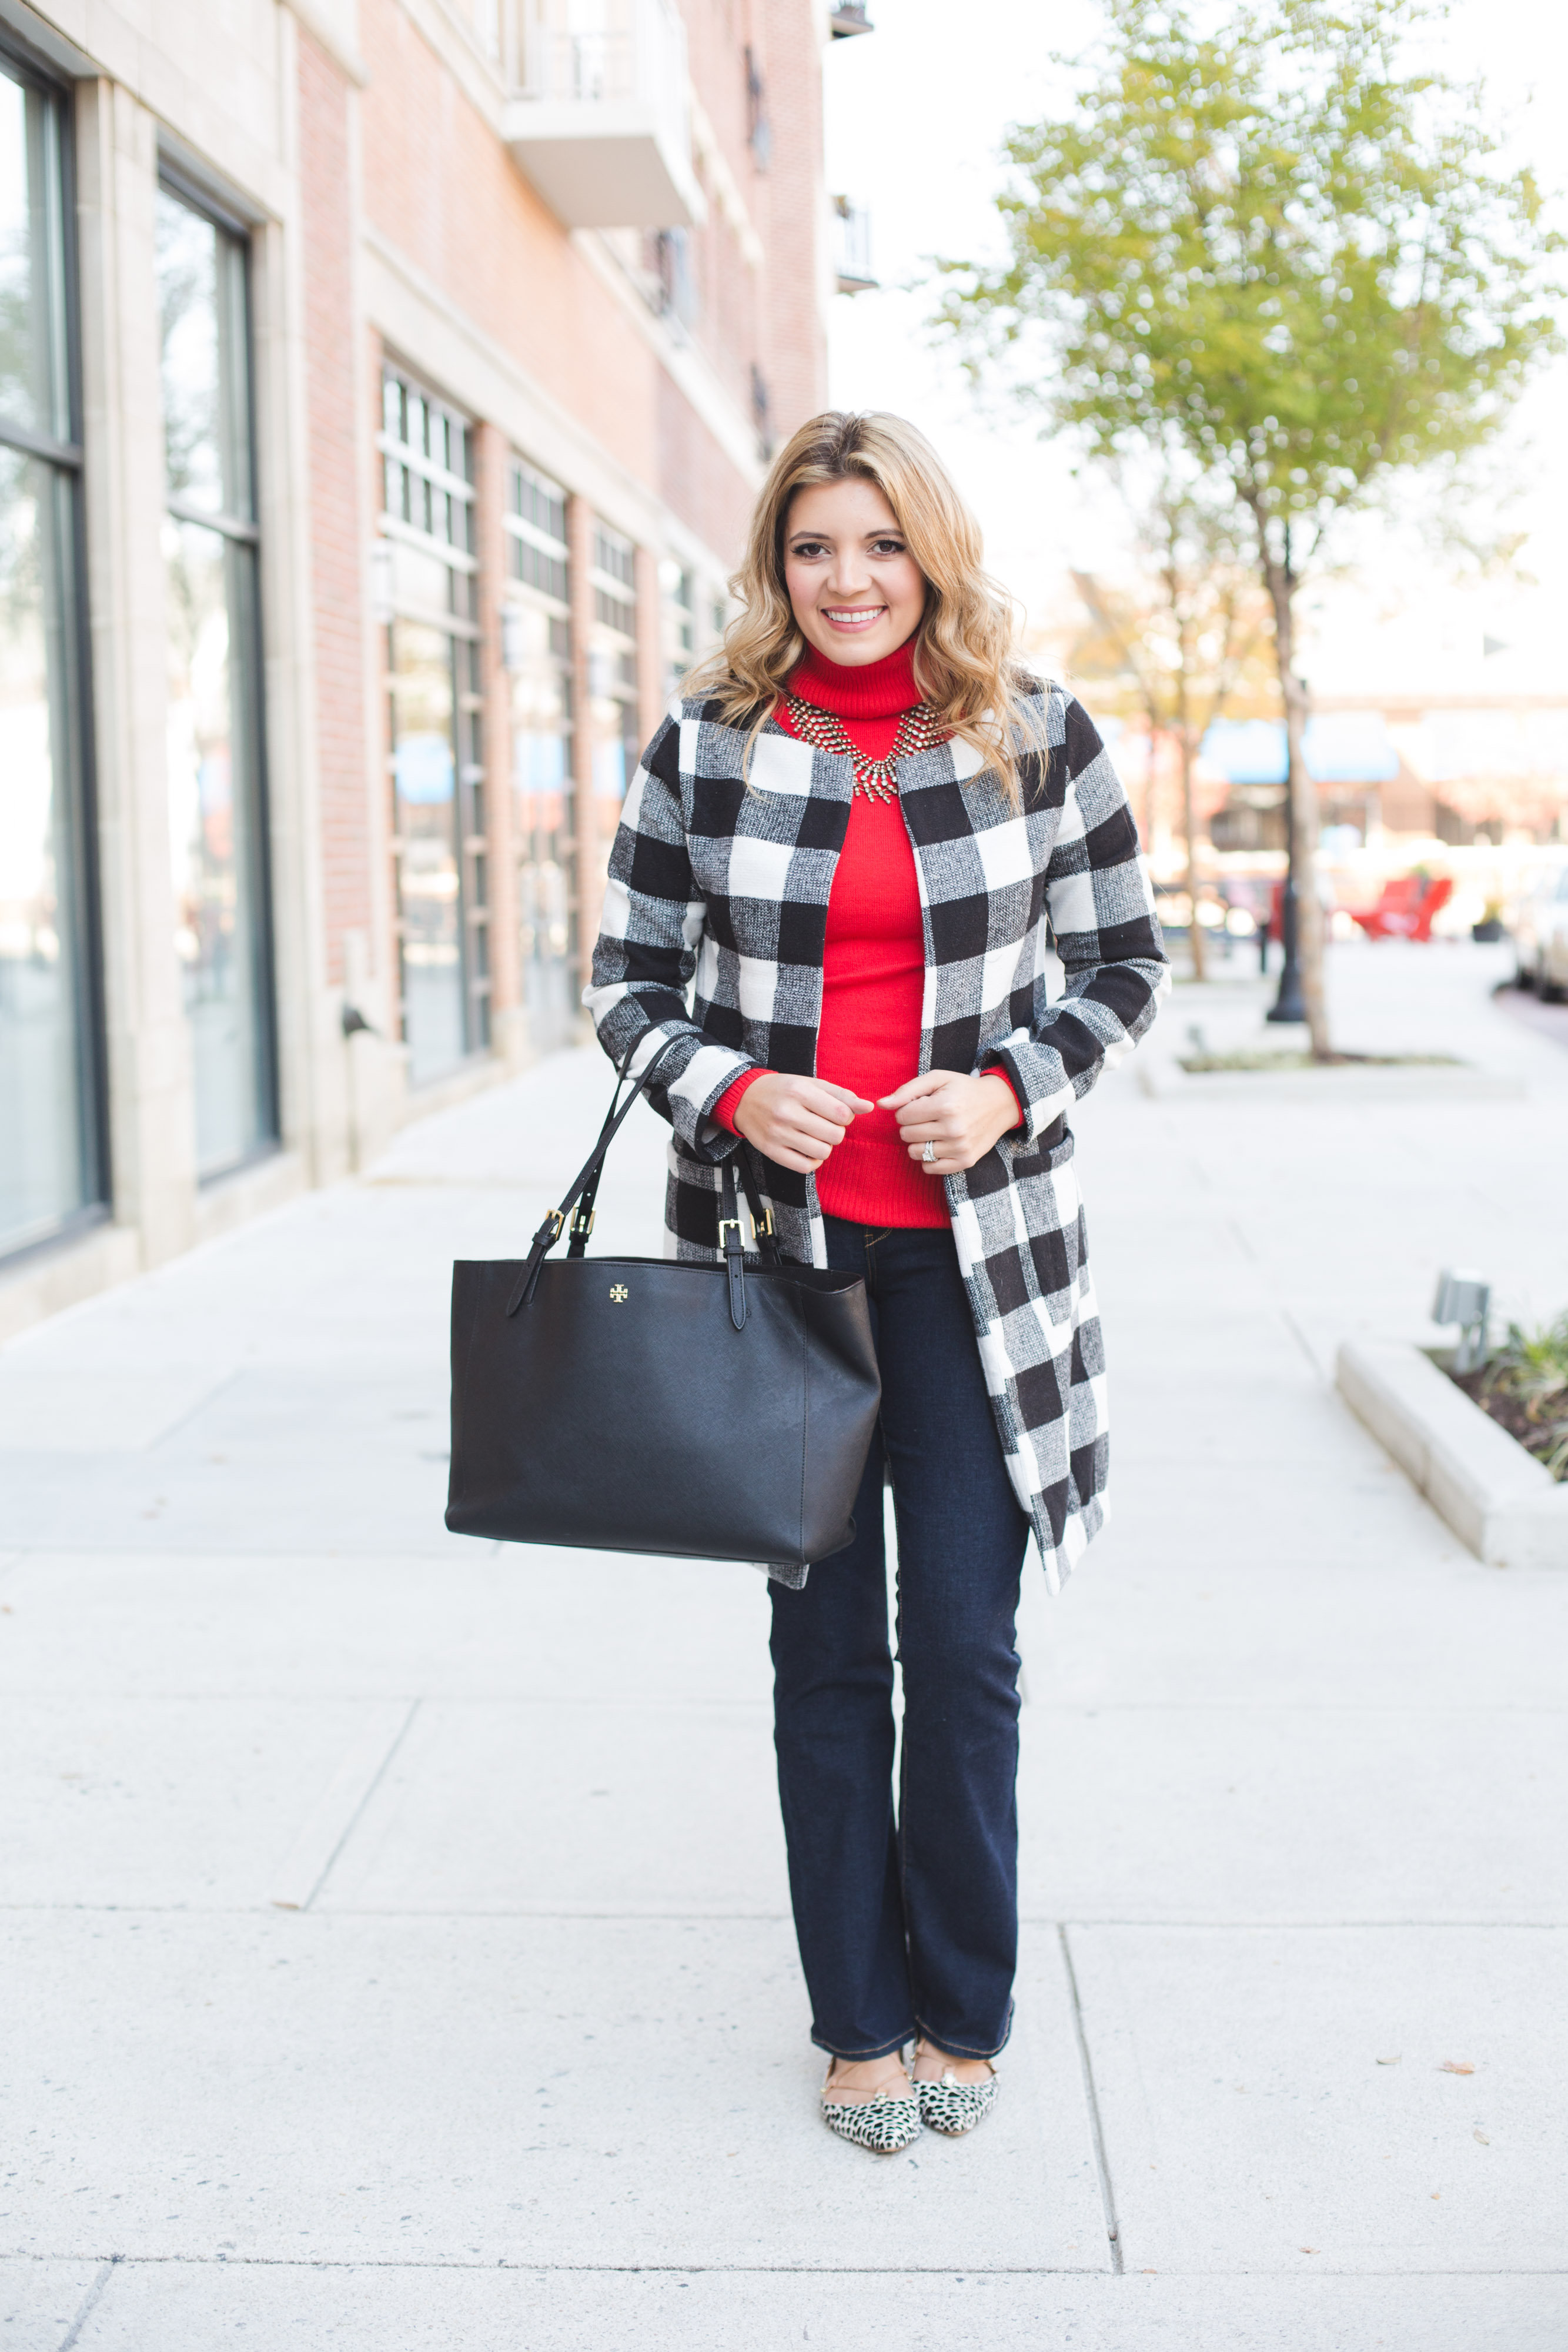 buffalo plaid jacket with bootcut jeans outfit - how wear red turtleneck sweater | www.bylaurenm.com